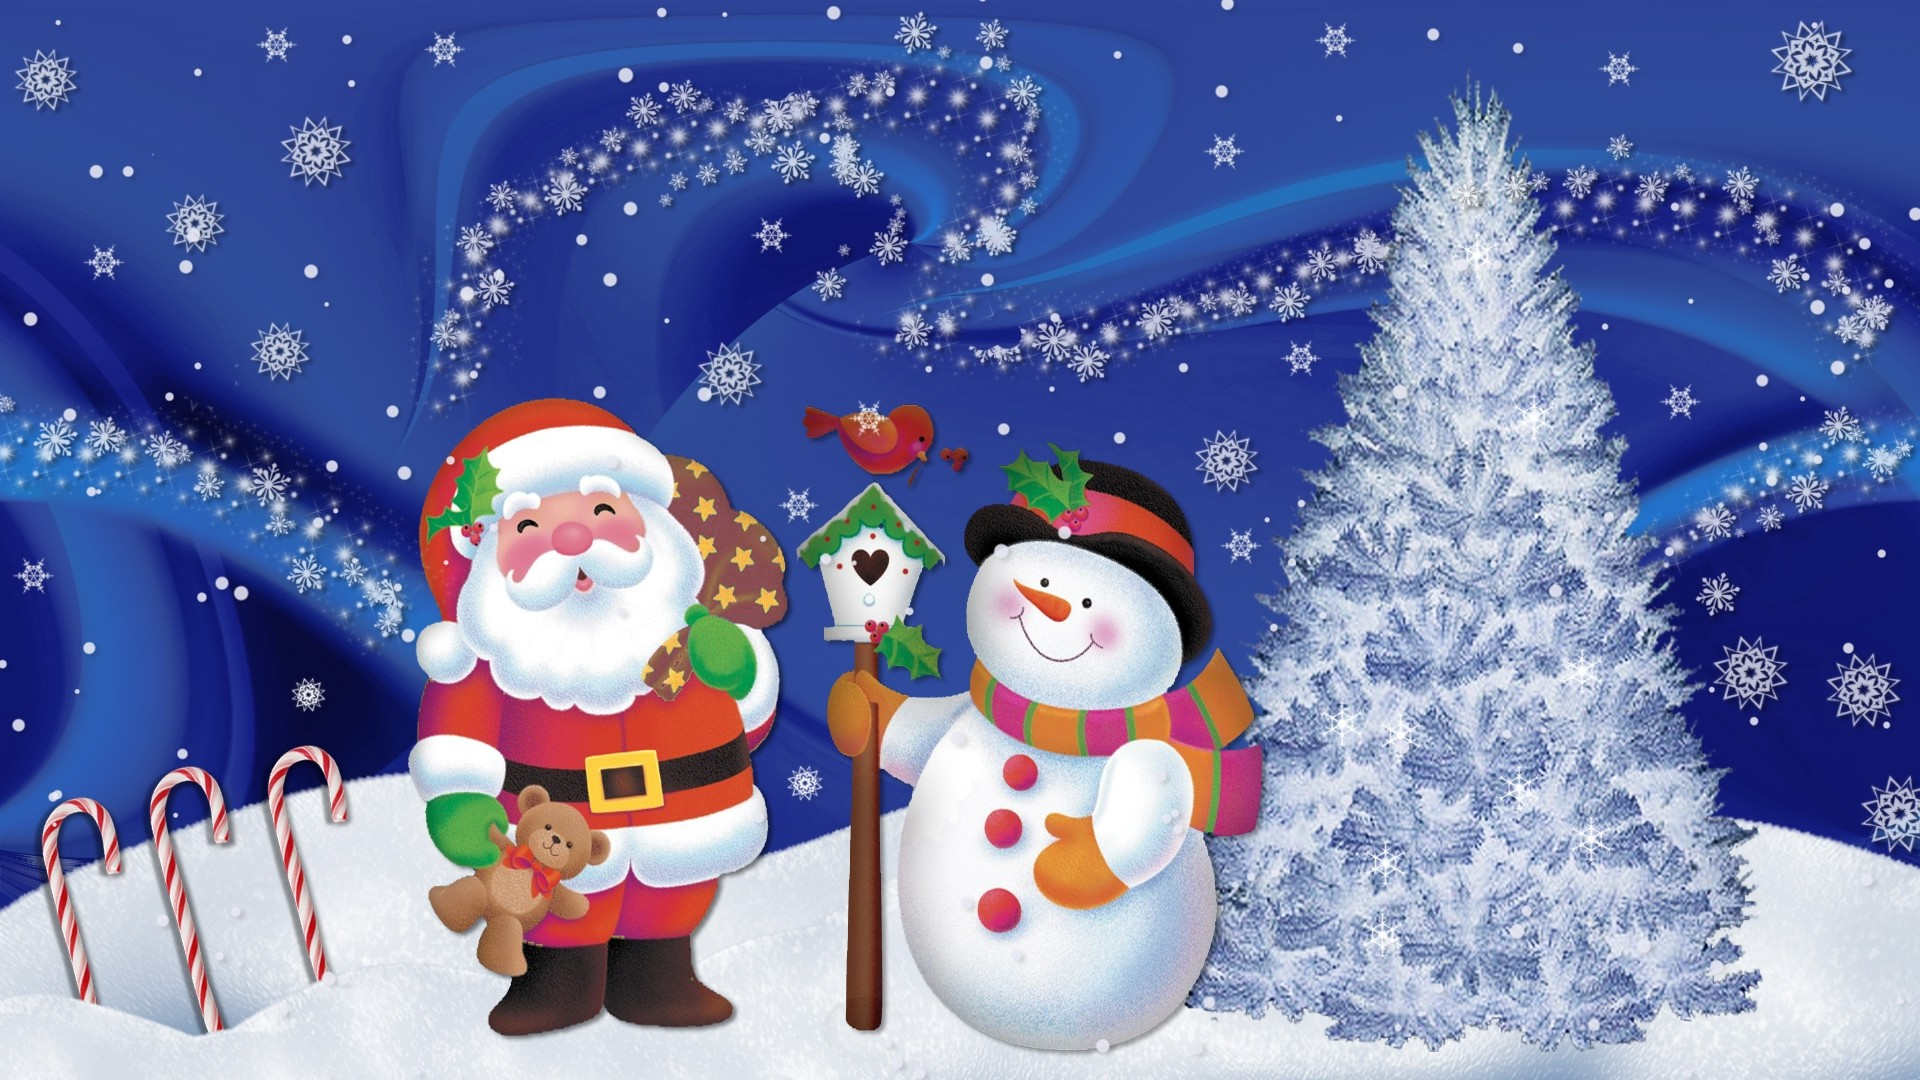 Christmas Wallpapers Animated Hd Wallpapers Download 1920x1080